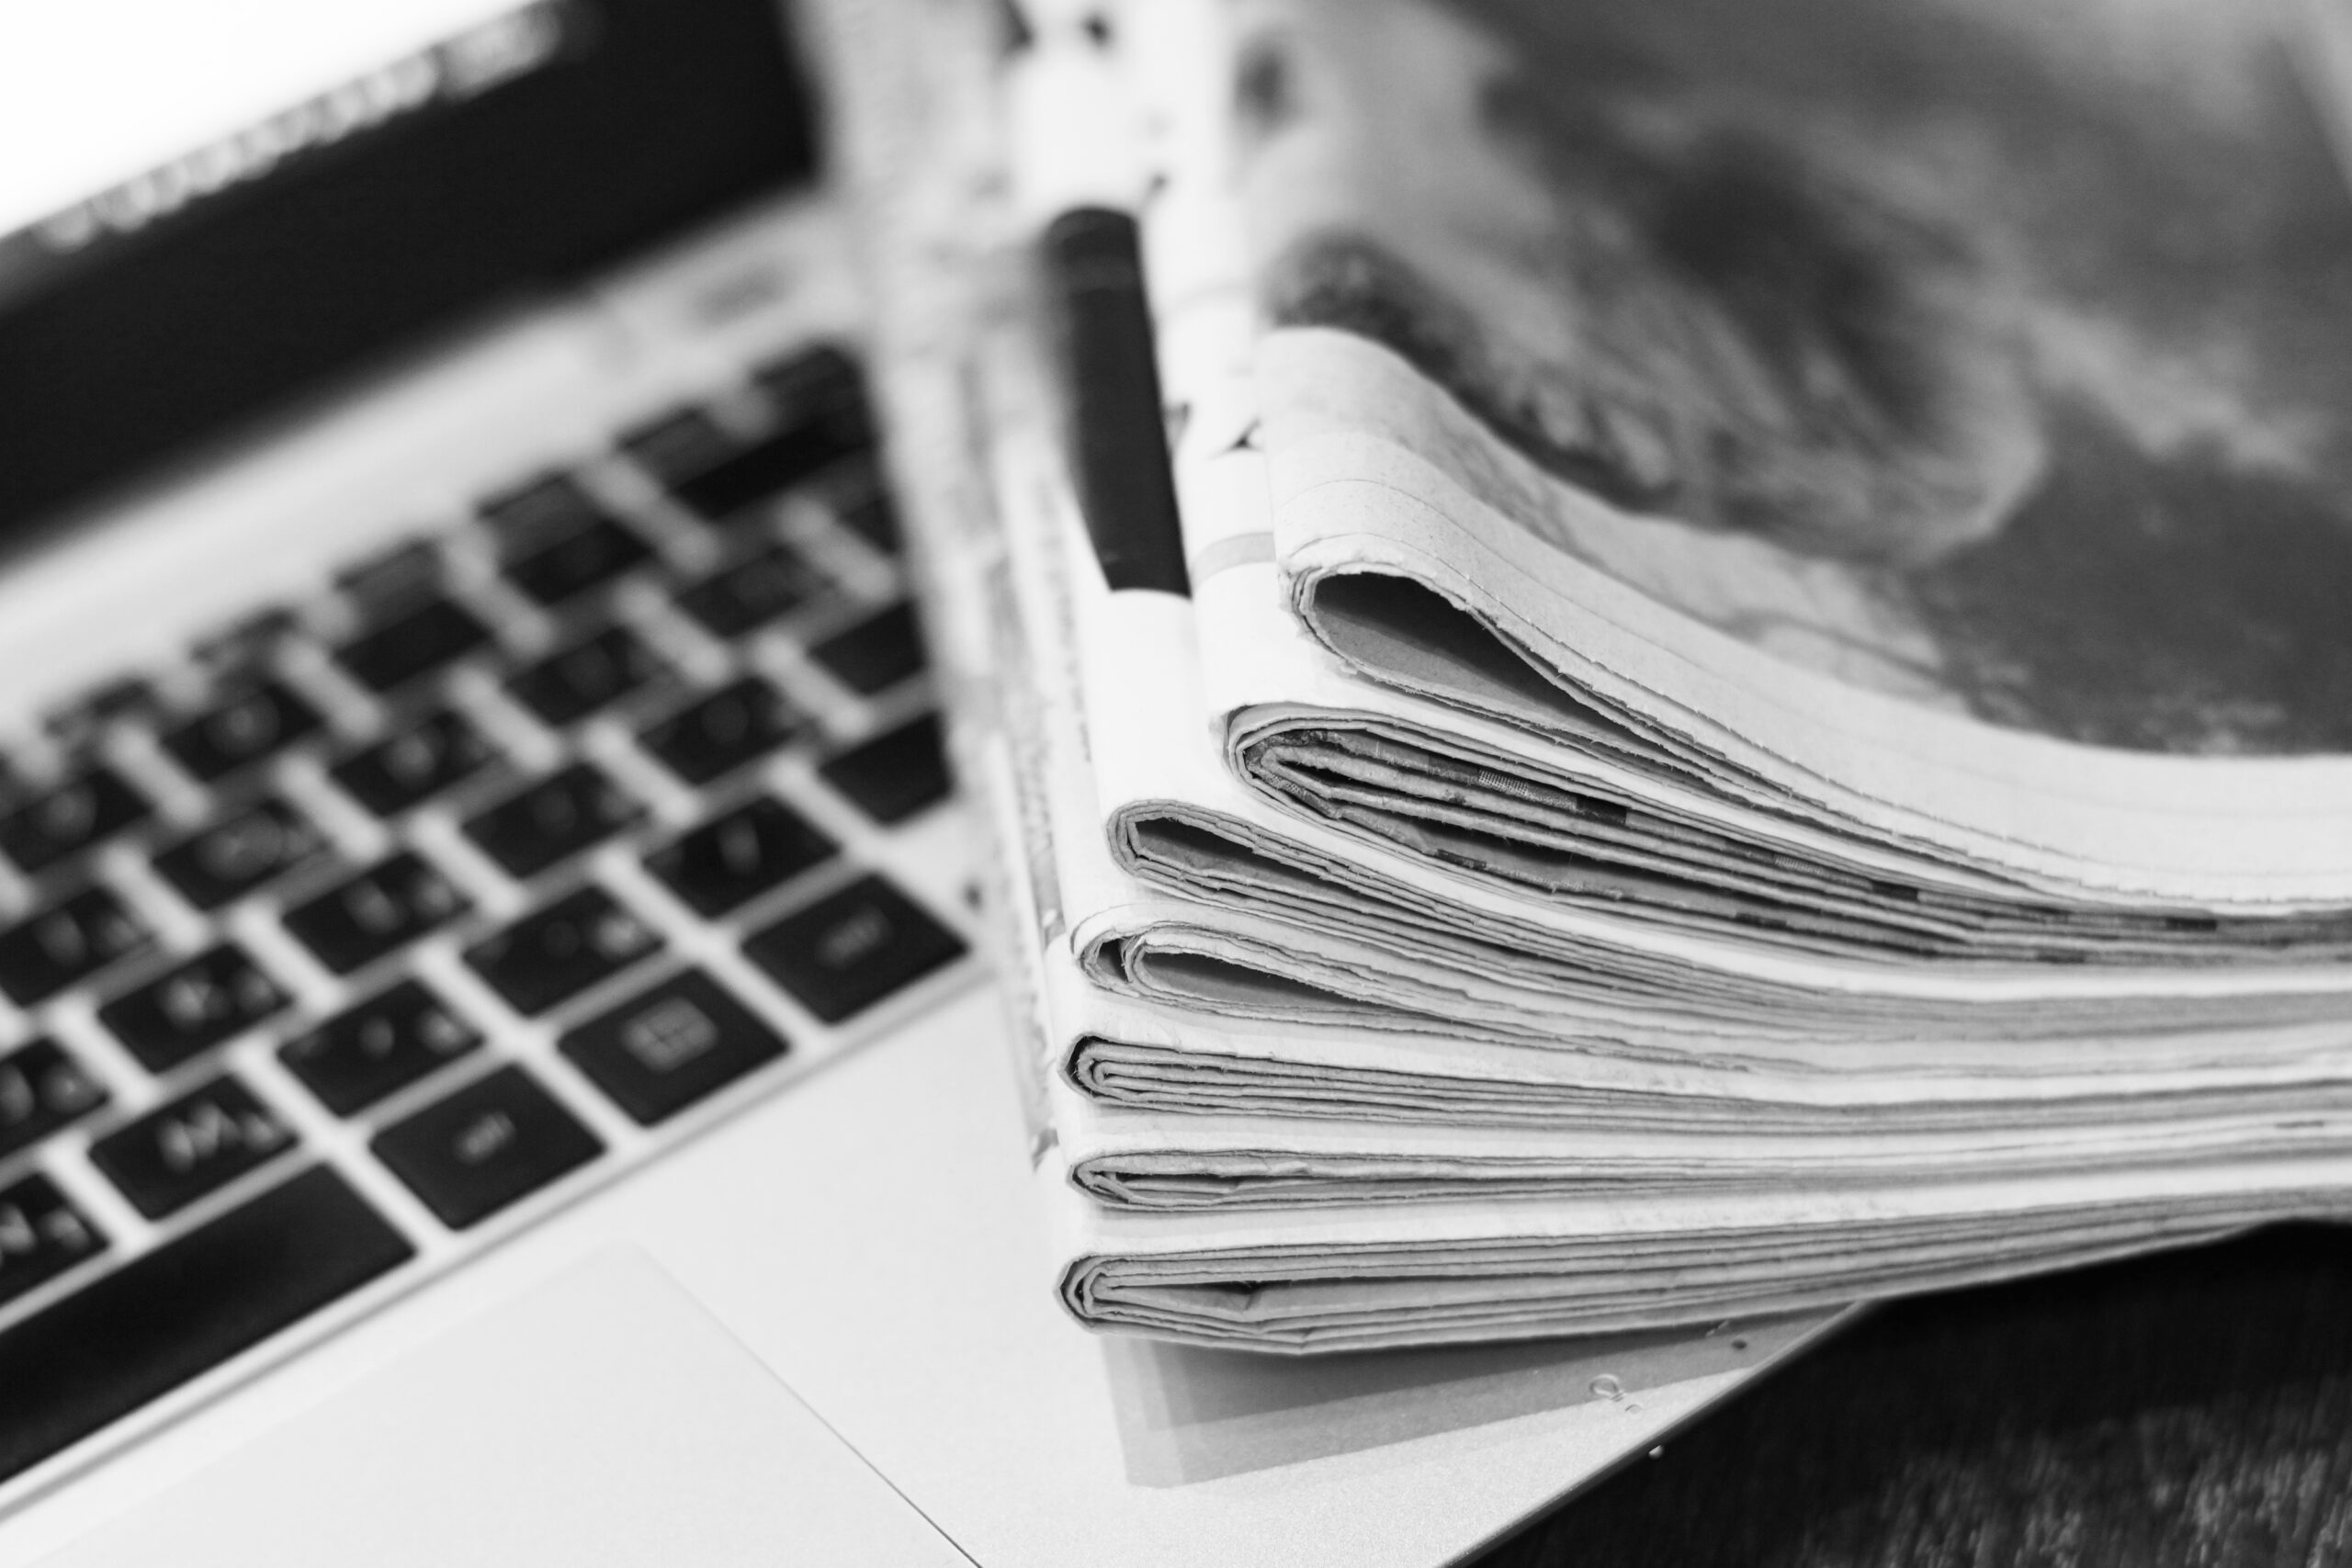 Partisan sites erode trust in local news - Lenfest Institute for Journalism